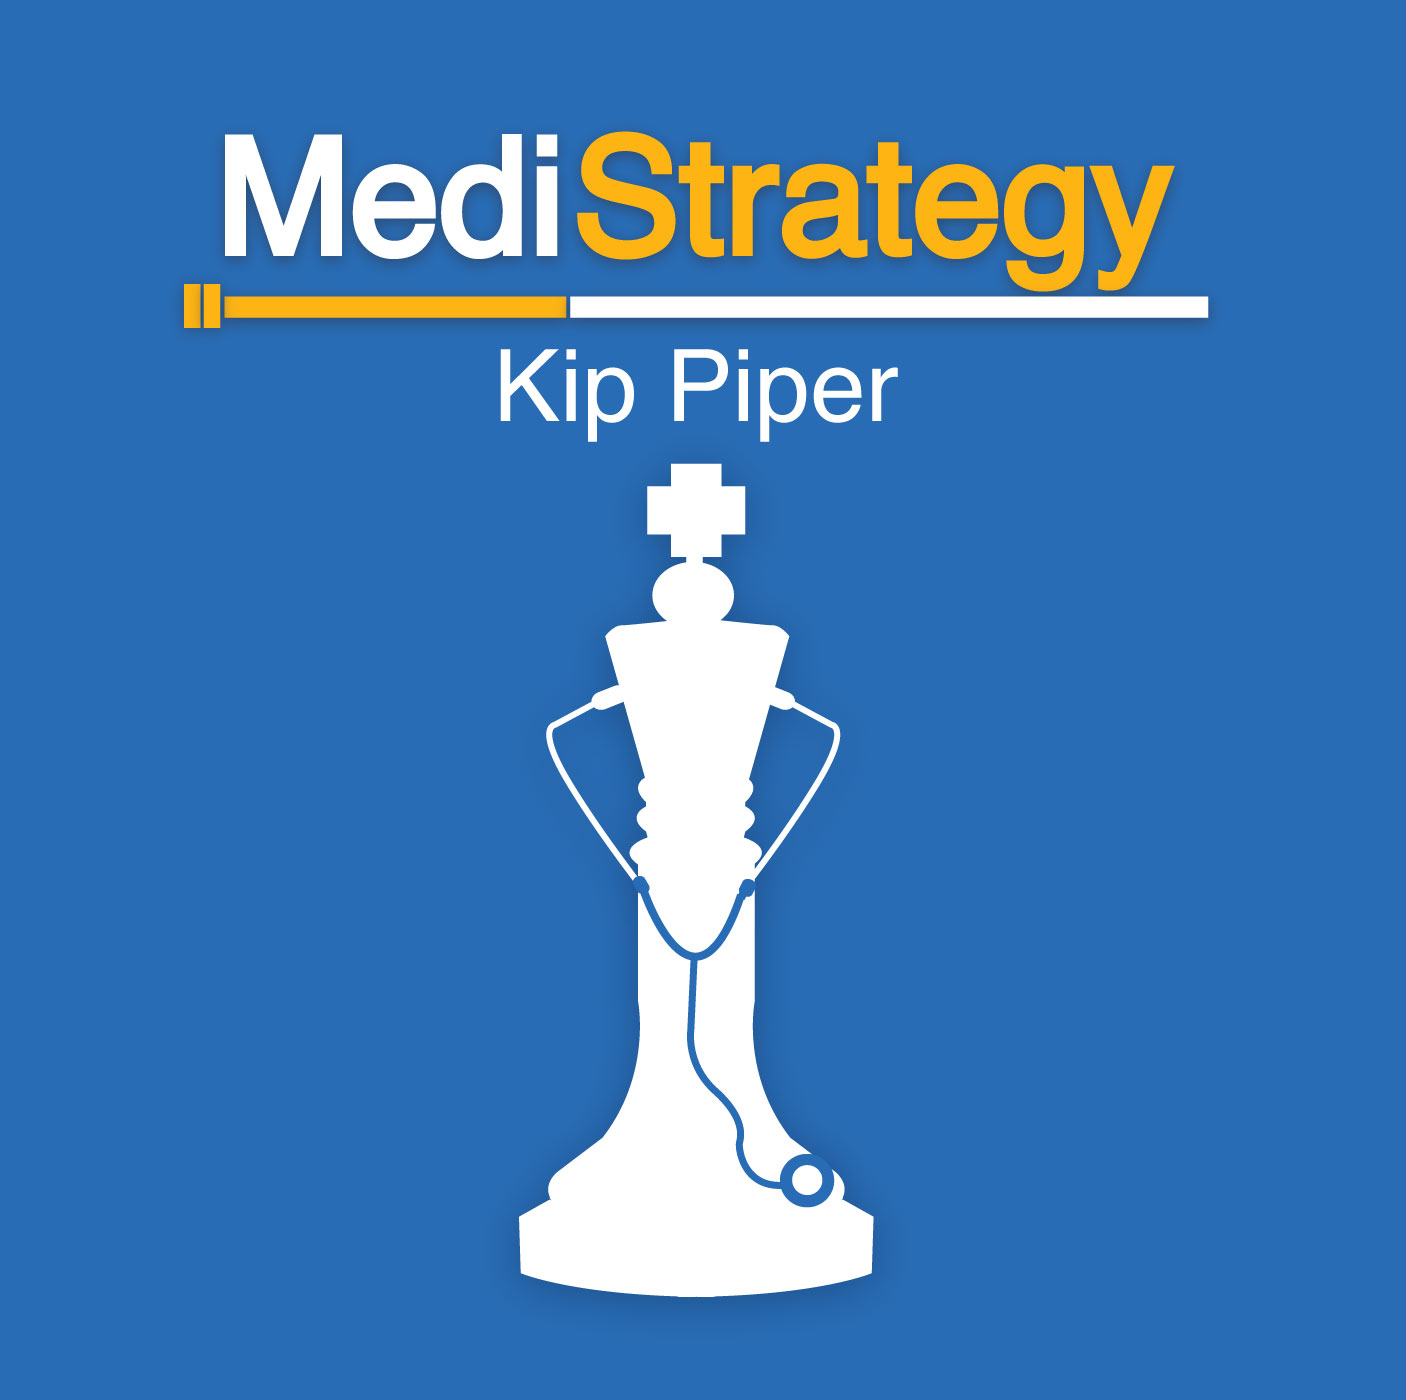 MediStrategy with Kip Piper logo